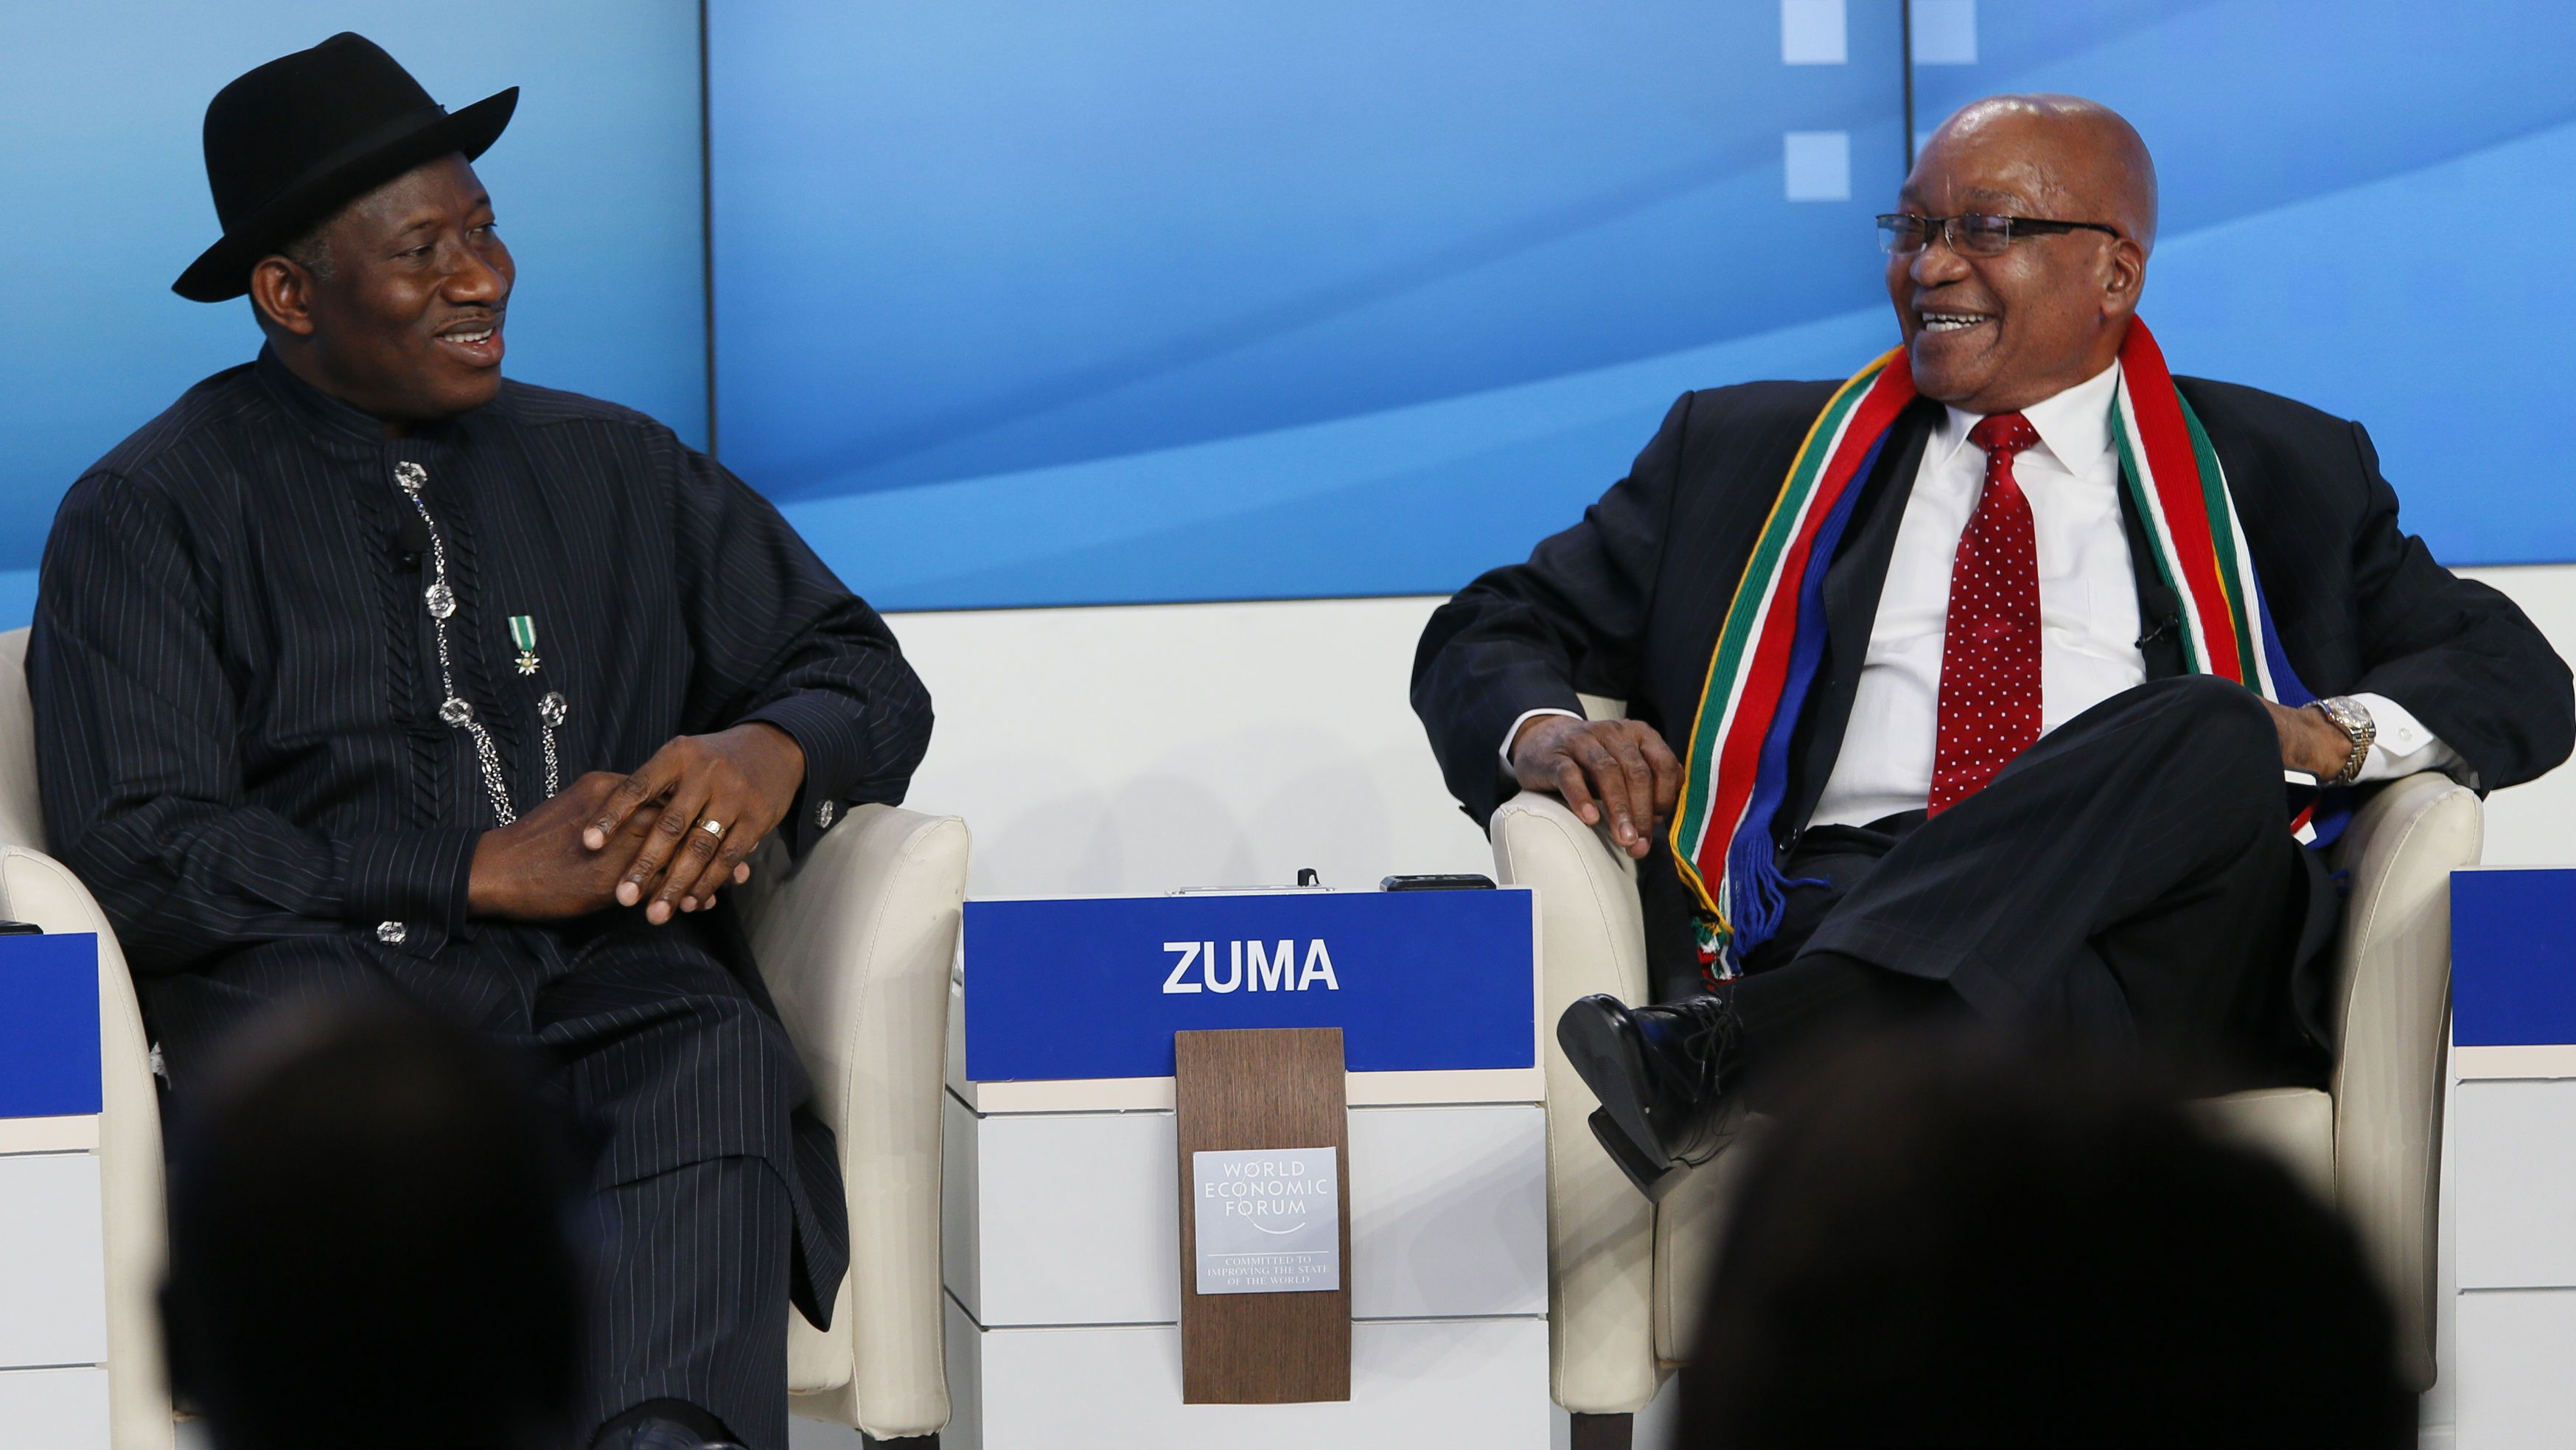 Nigeria's President Goodluck Ebele Jonathan (L) and South Africa's President Jacob Zuma attend the annual meeting of the World Economic Forum (WEF) in Davos January 23, 2013. REUTERS/Pascal Lauener (SWITZERLAND - Tags: POLITICS BUSINESS)